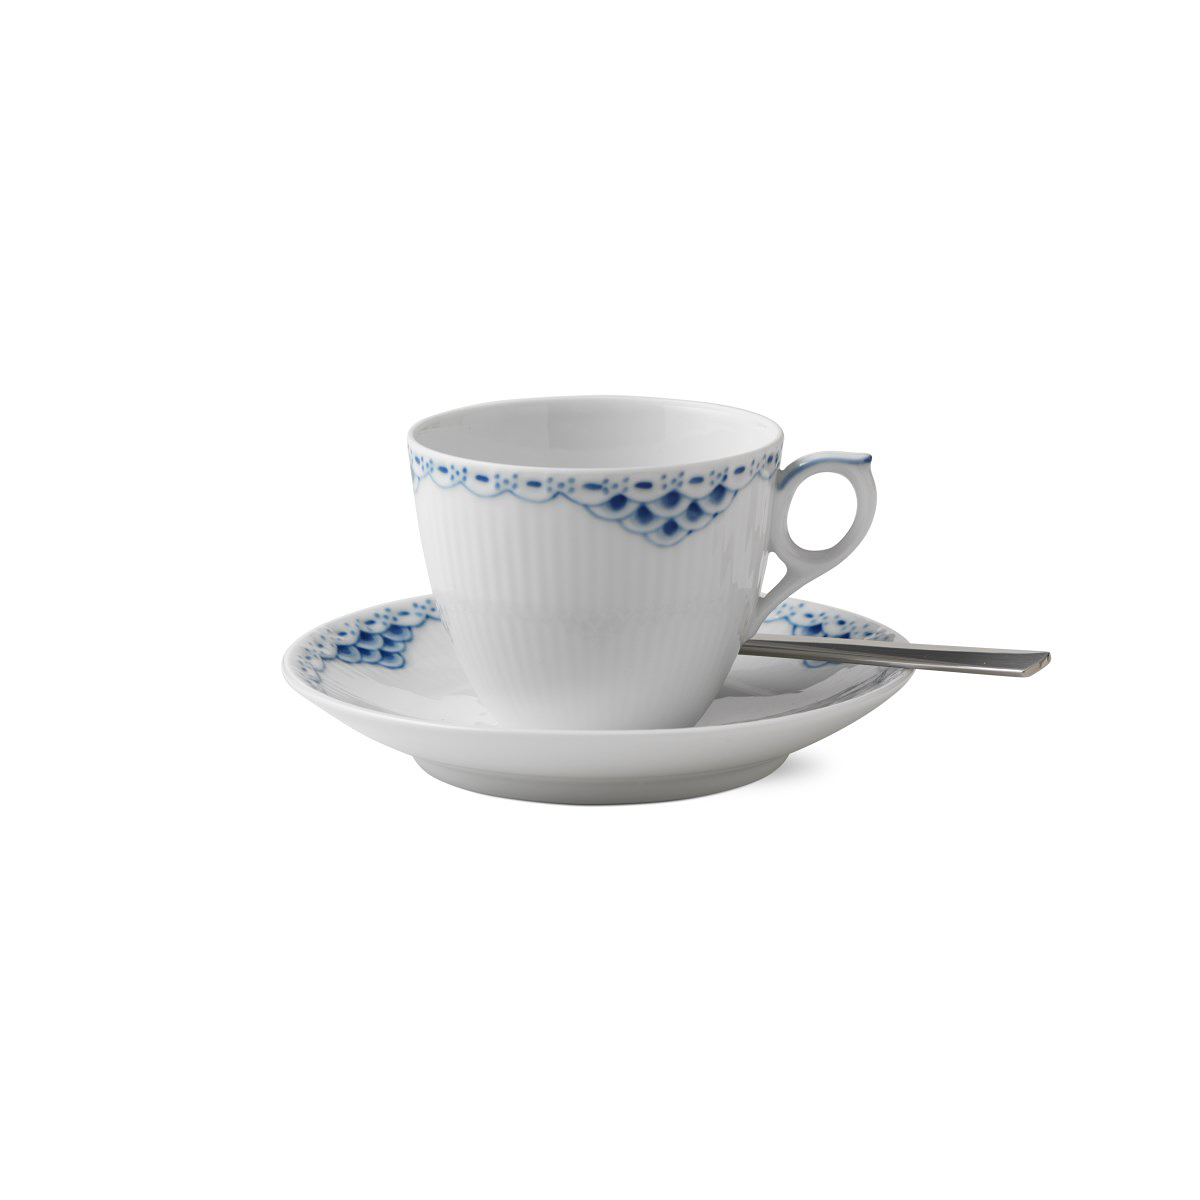 Royal Copenhagen, Princess Coffee Cup and Saucer 5.75oz.